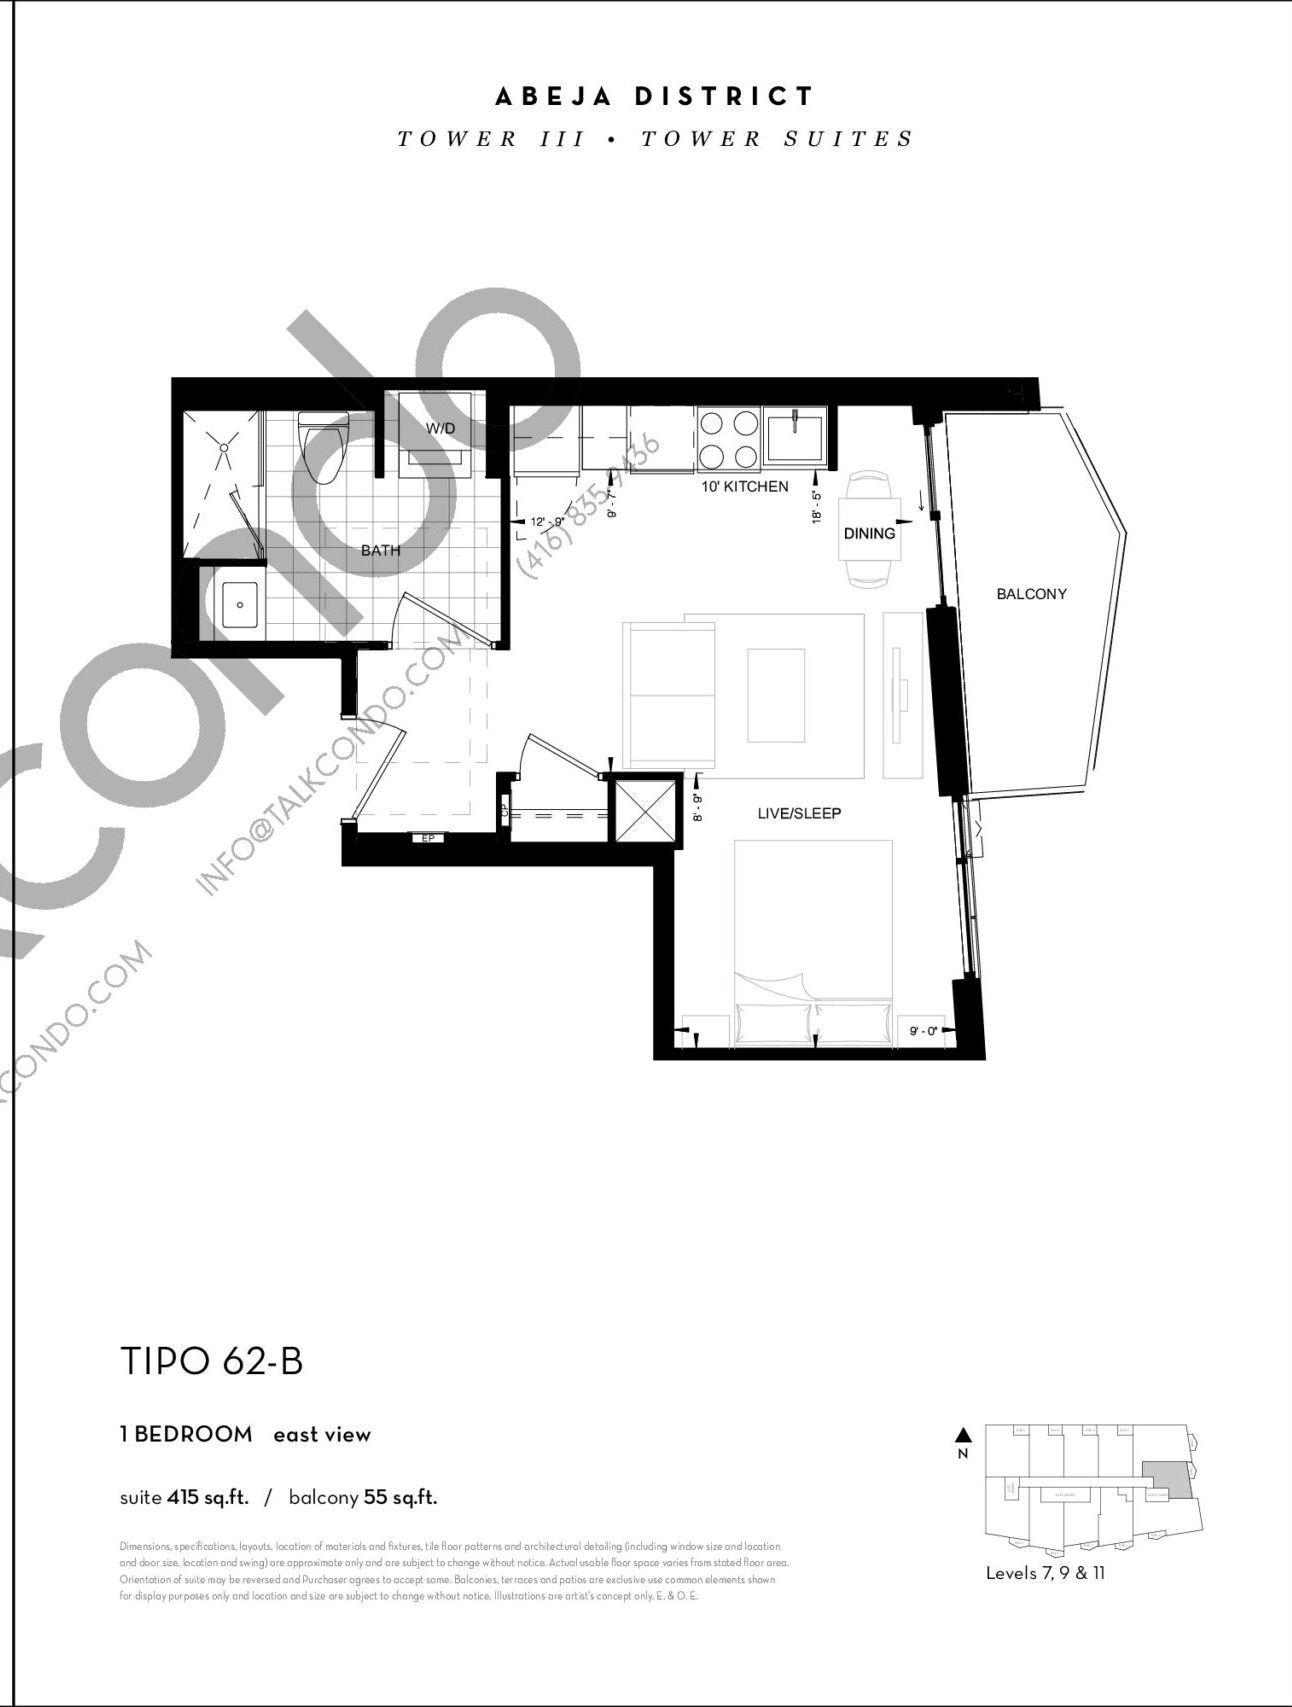 TIPO 62-B Floor Plan at Abeja District Condos Tower 3 - 415 sq.ft